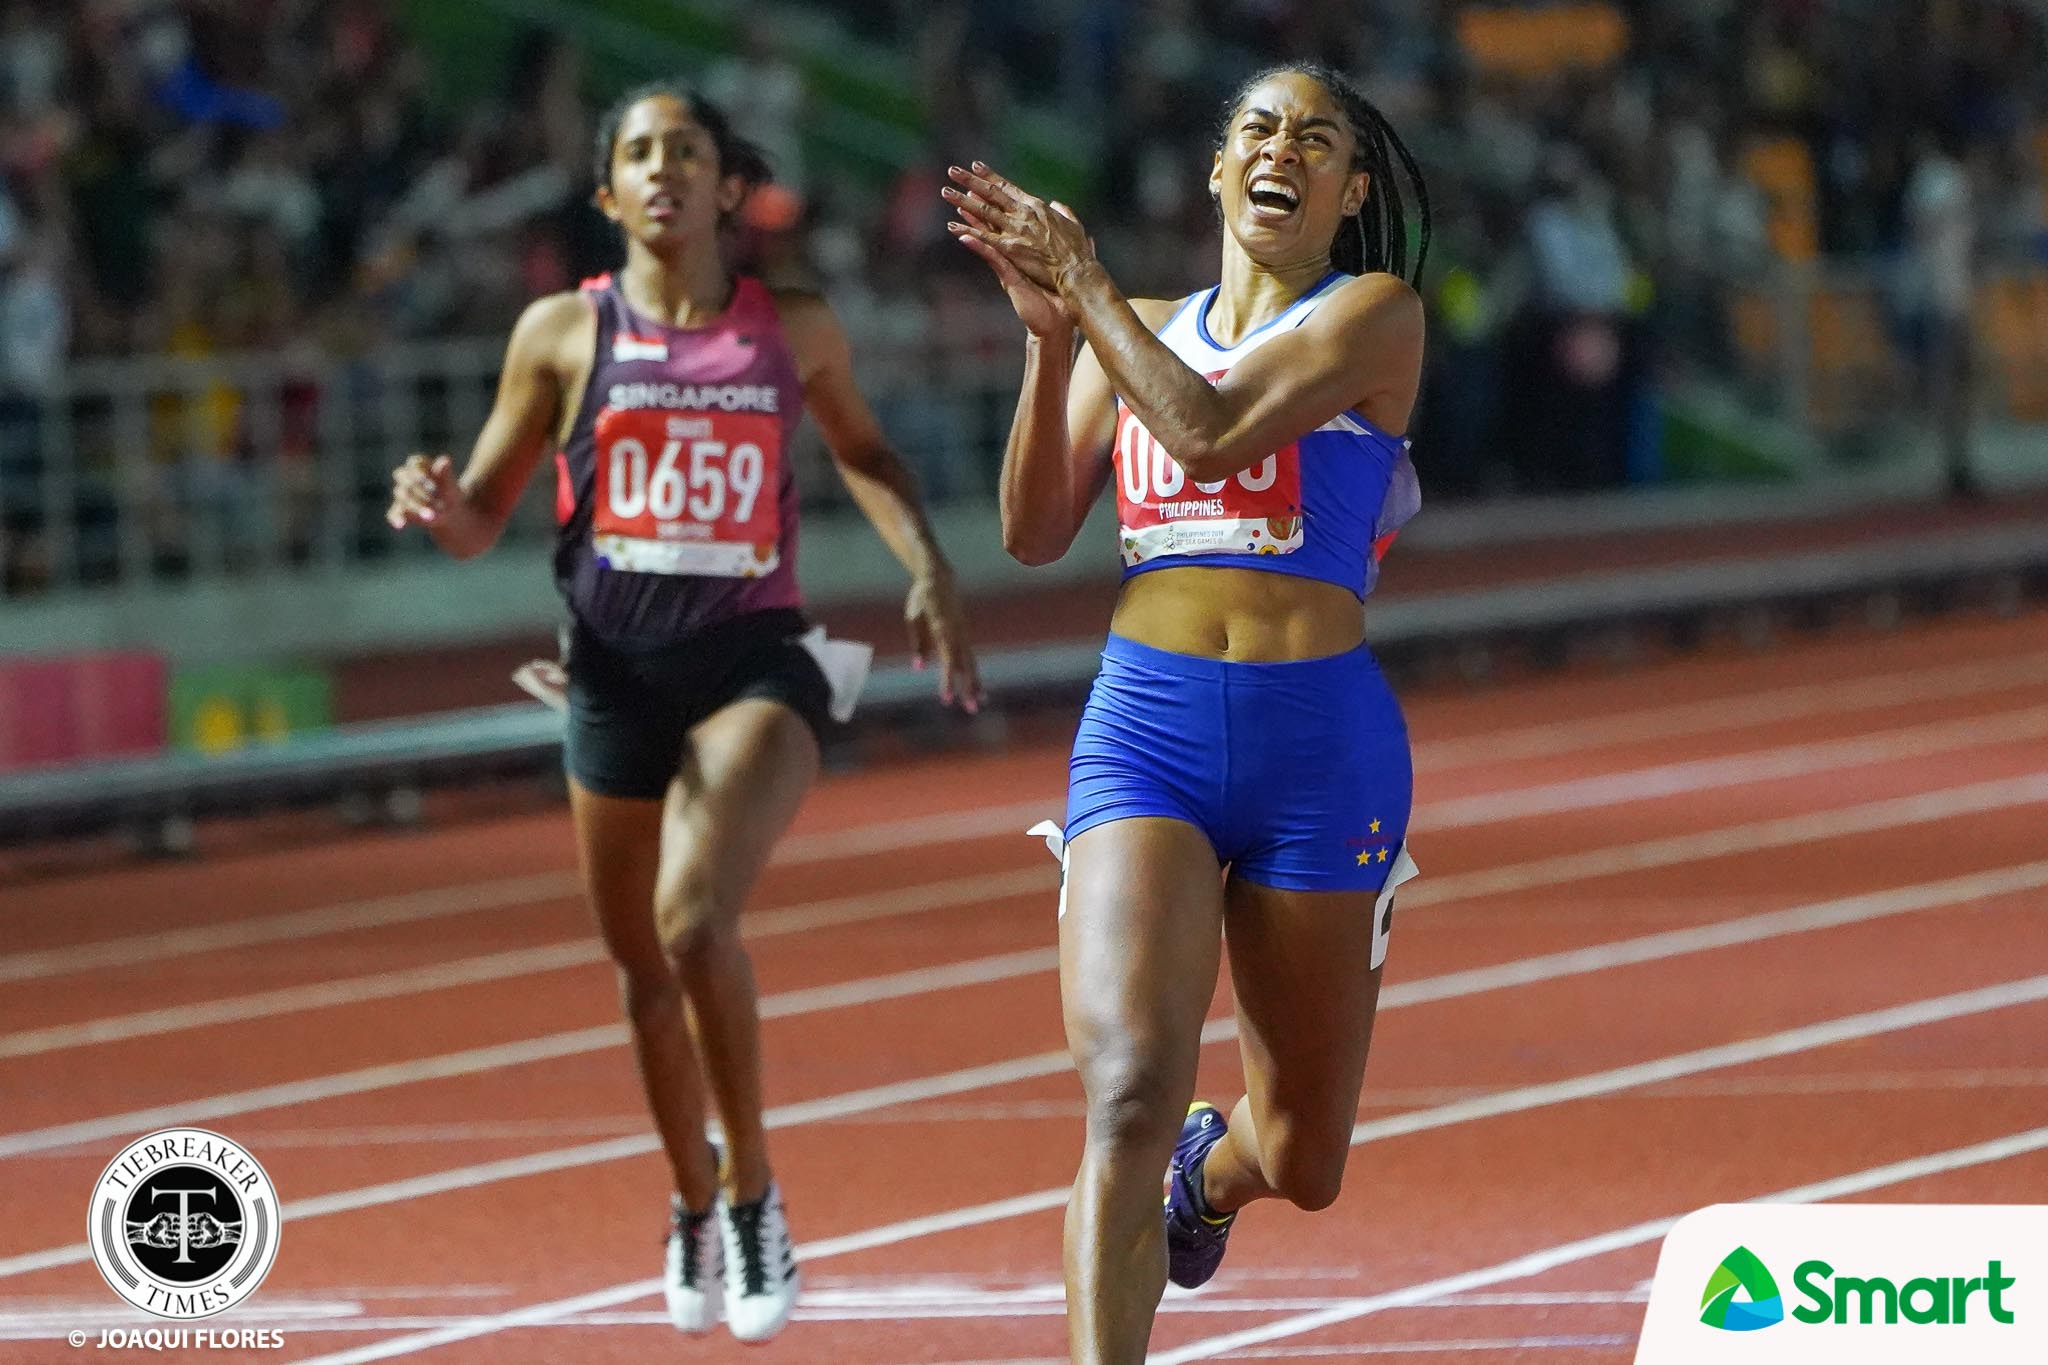 SEAG-Track-Knott-00566 Midlife Halftime Olympic Odyssey:  Kristina Knott races for her culture, for greatness 2020 Tokyo Olympics Track & Field  - philippine sports news